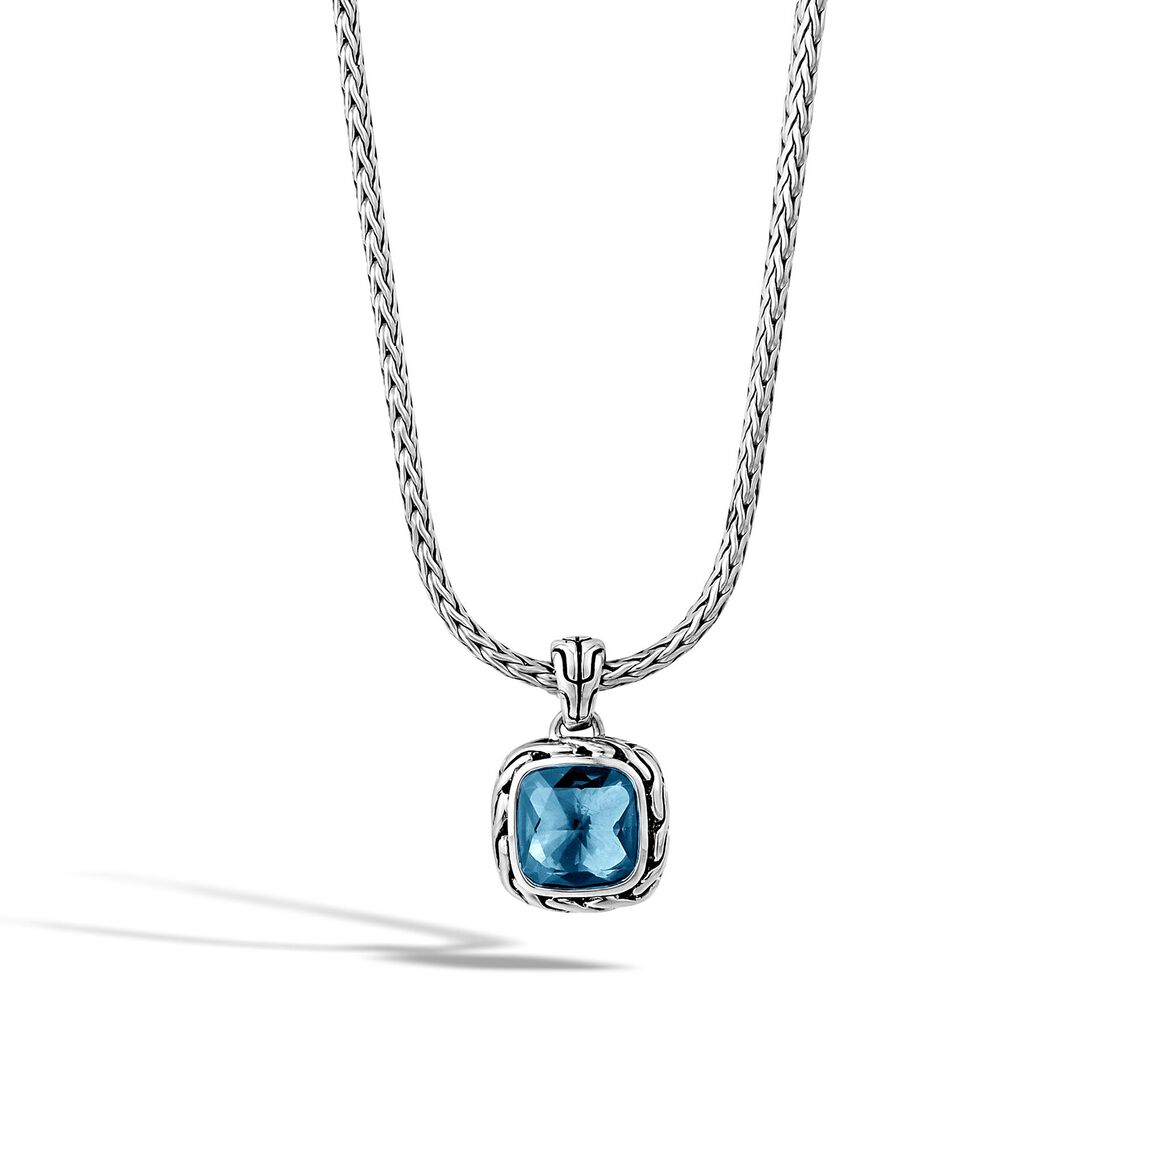 Classic Chain Pendant Necklace in Silver with 8MM Gemstone